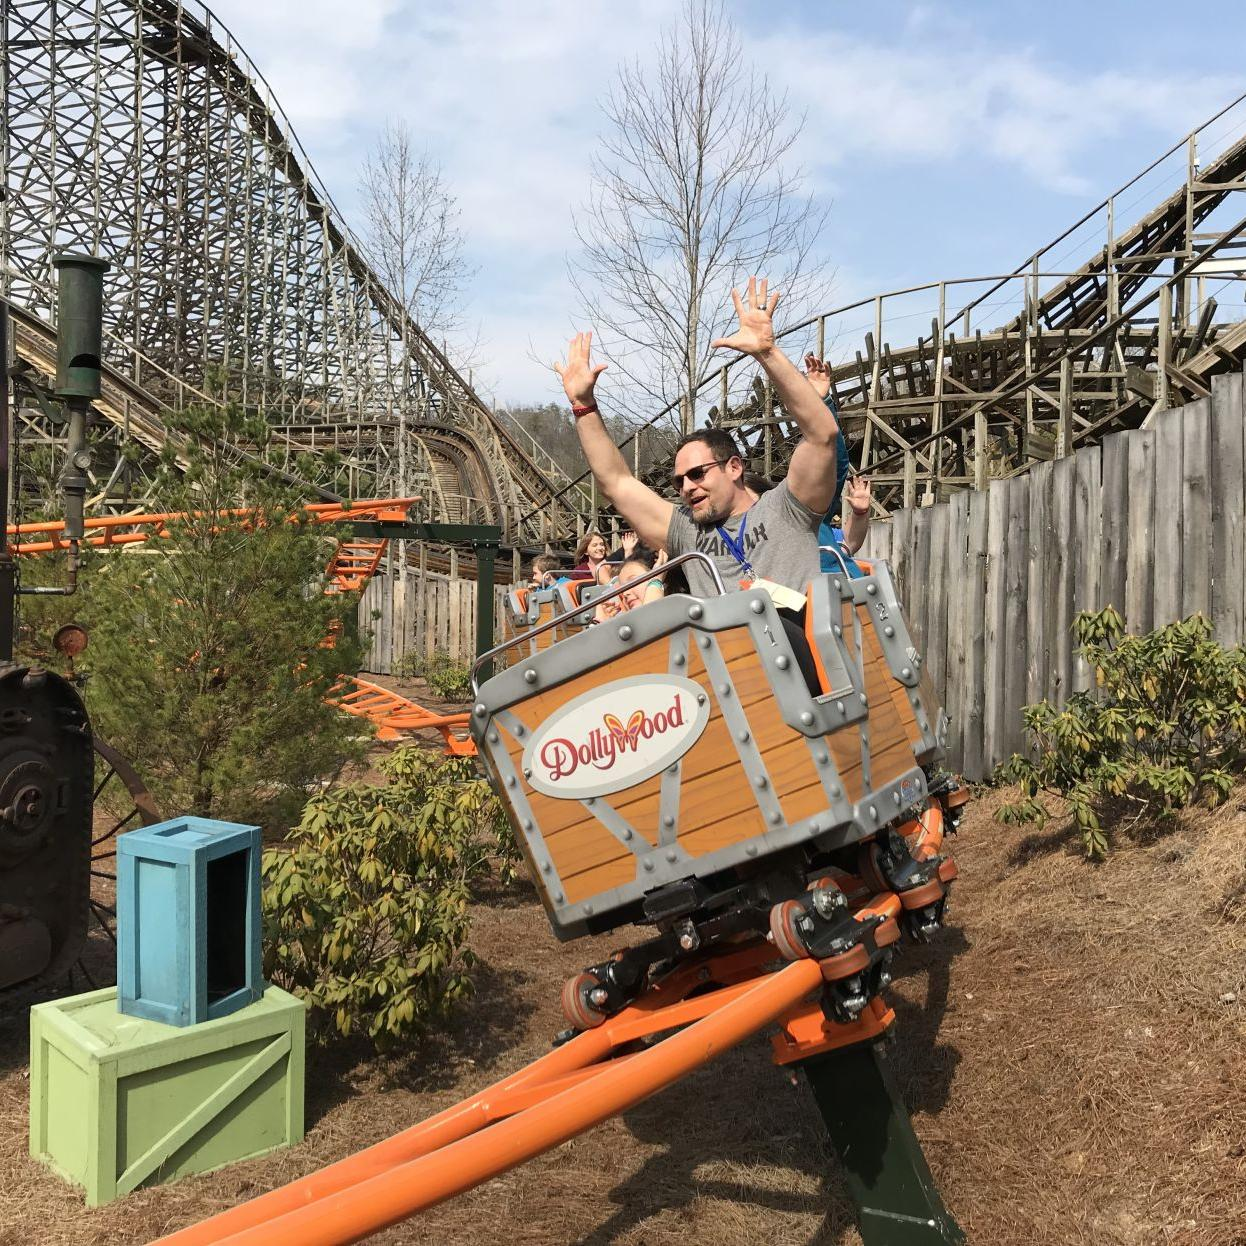 Dollywood Features Whistle Punk Chaser Roller Coaster Lifestyles